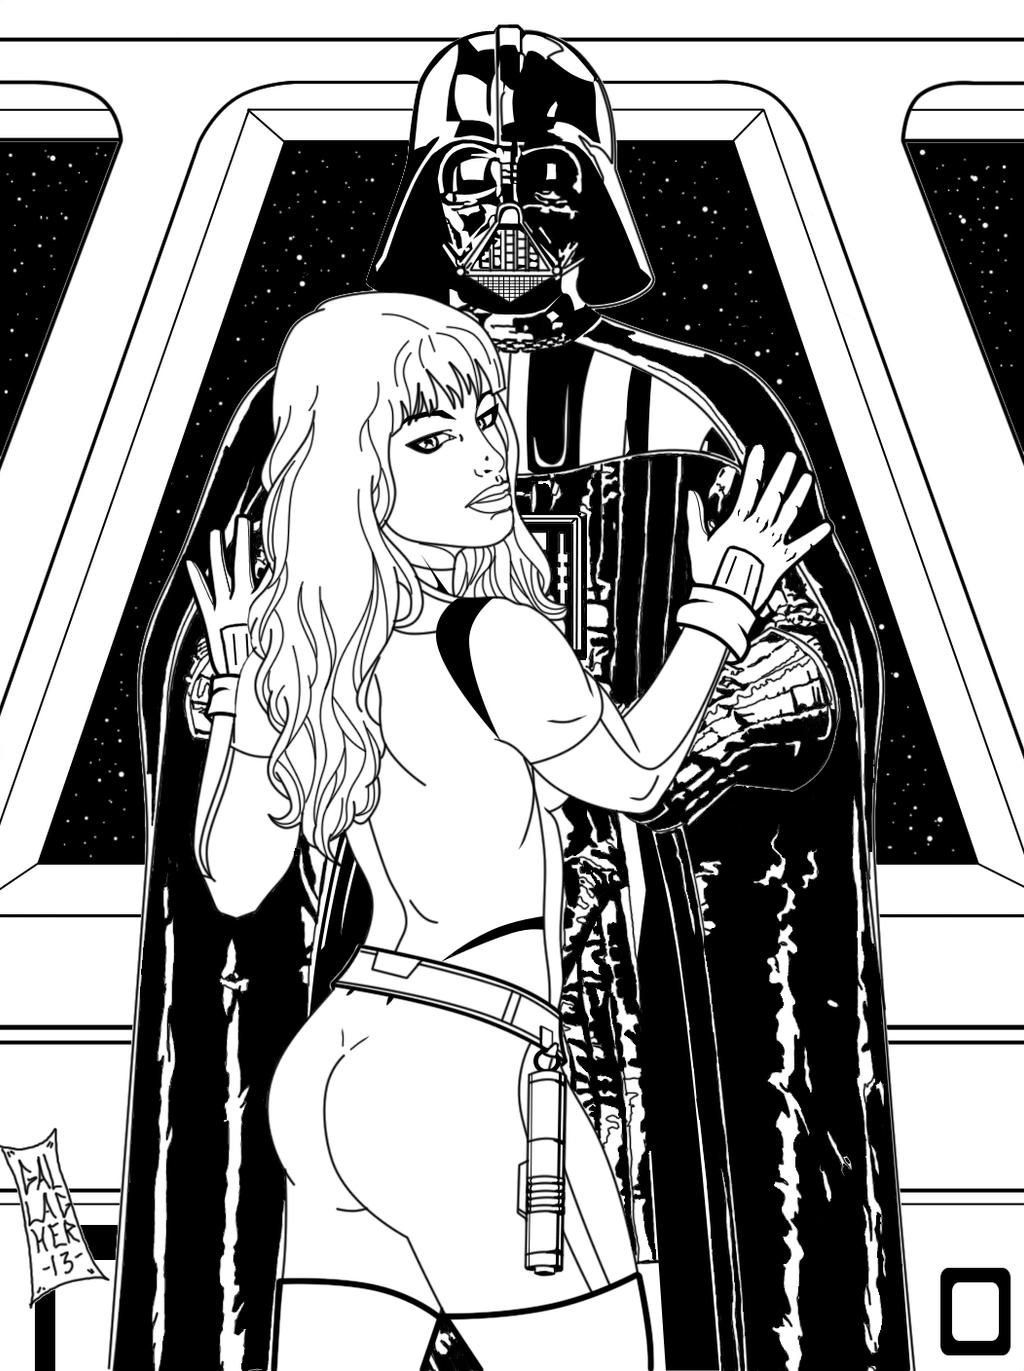 Darth vader 39 s new apprentice black and white by soulgem01 for Darth vader black and white